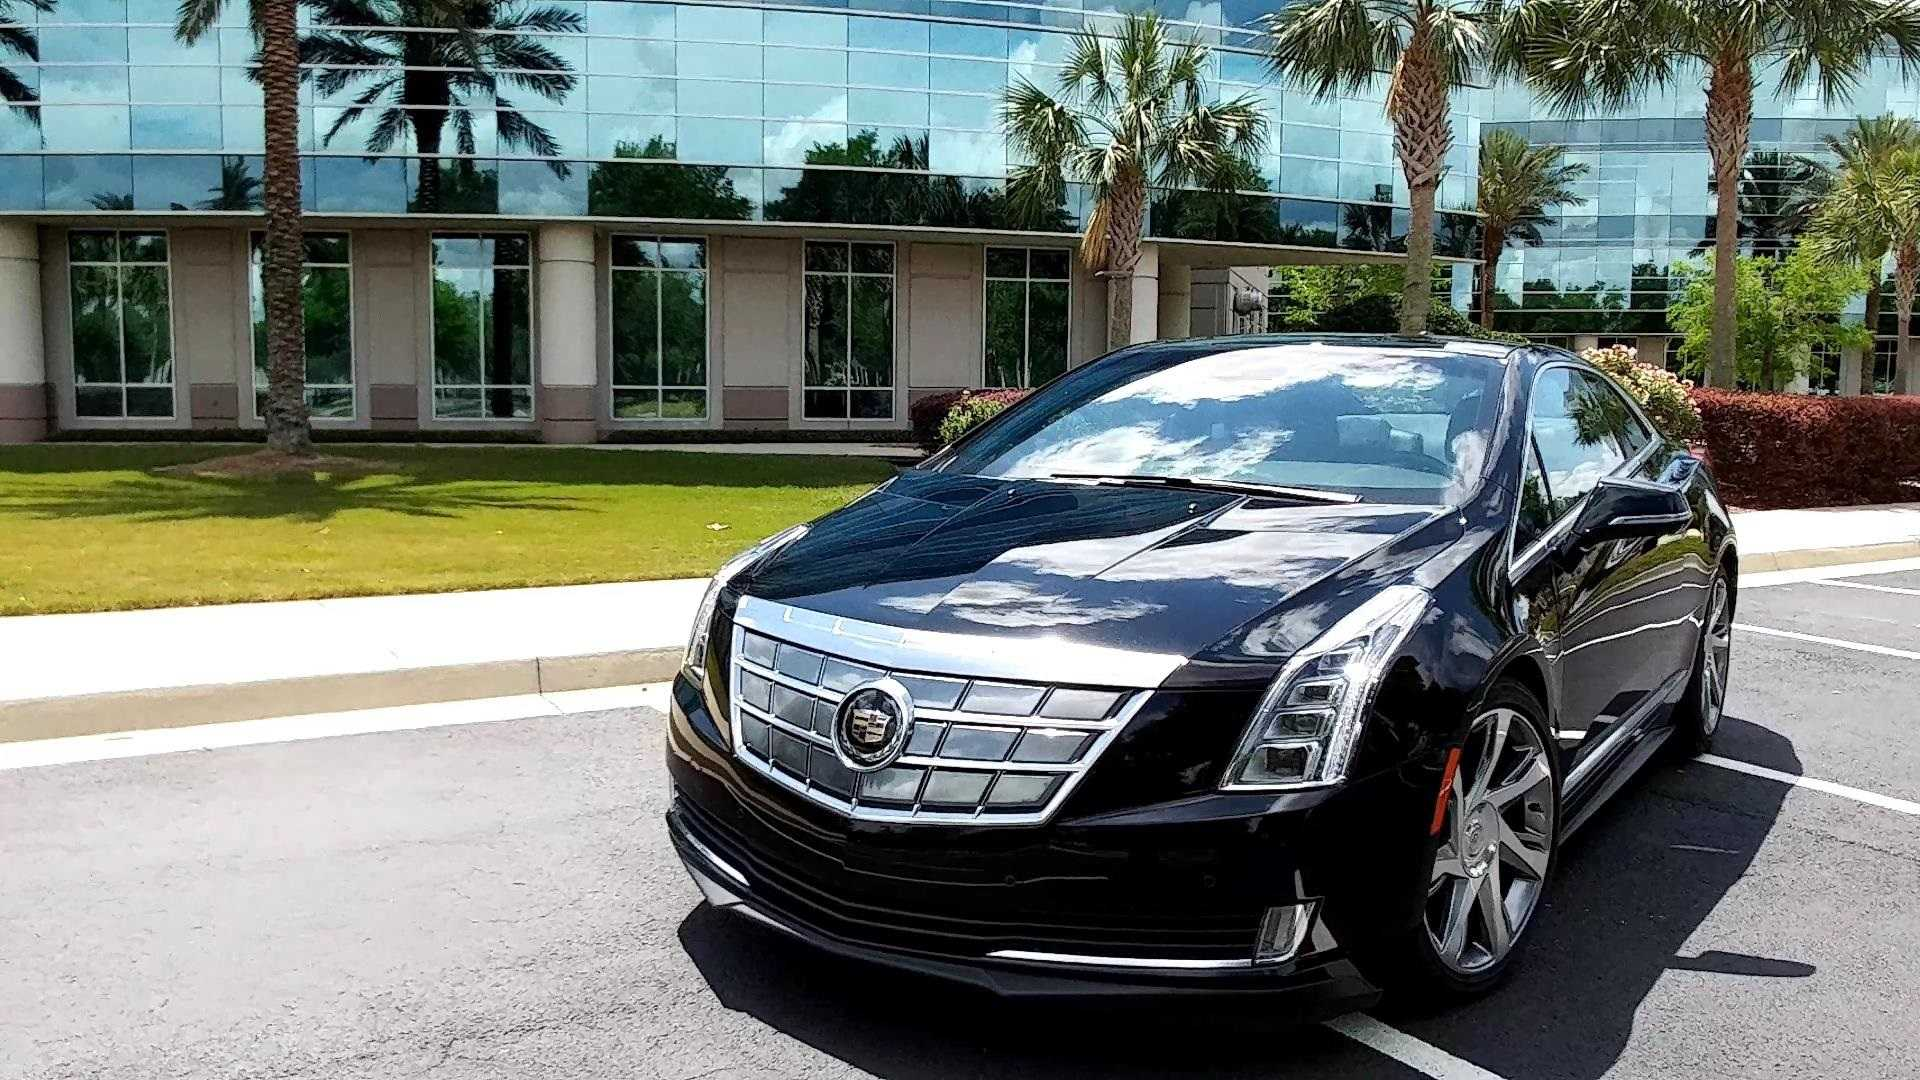 56 The Best 2020 Cadillac ELR S Exterior And Interior